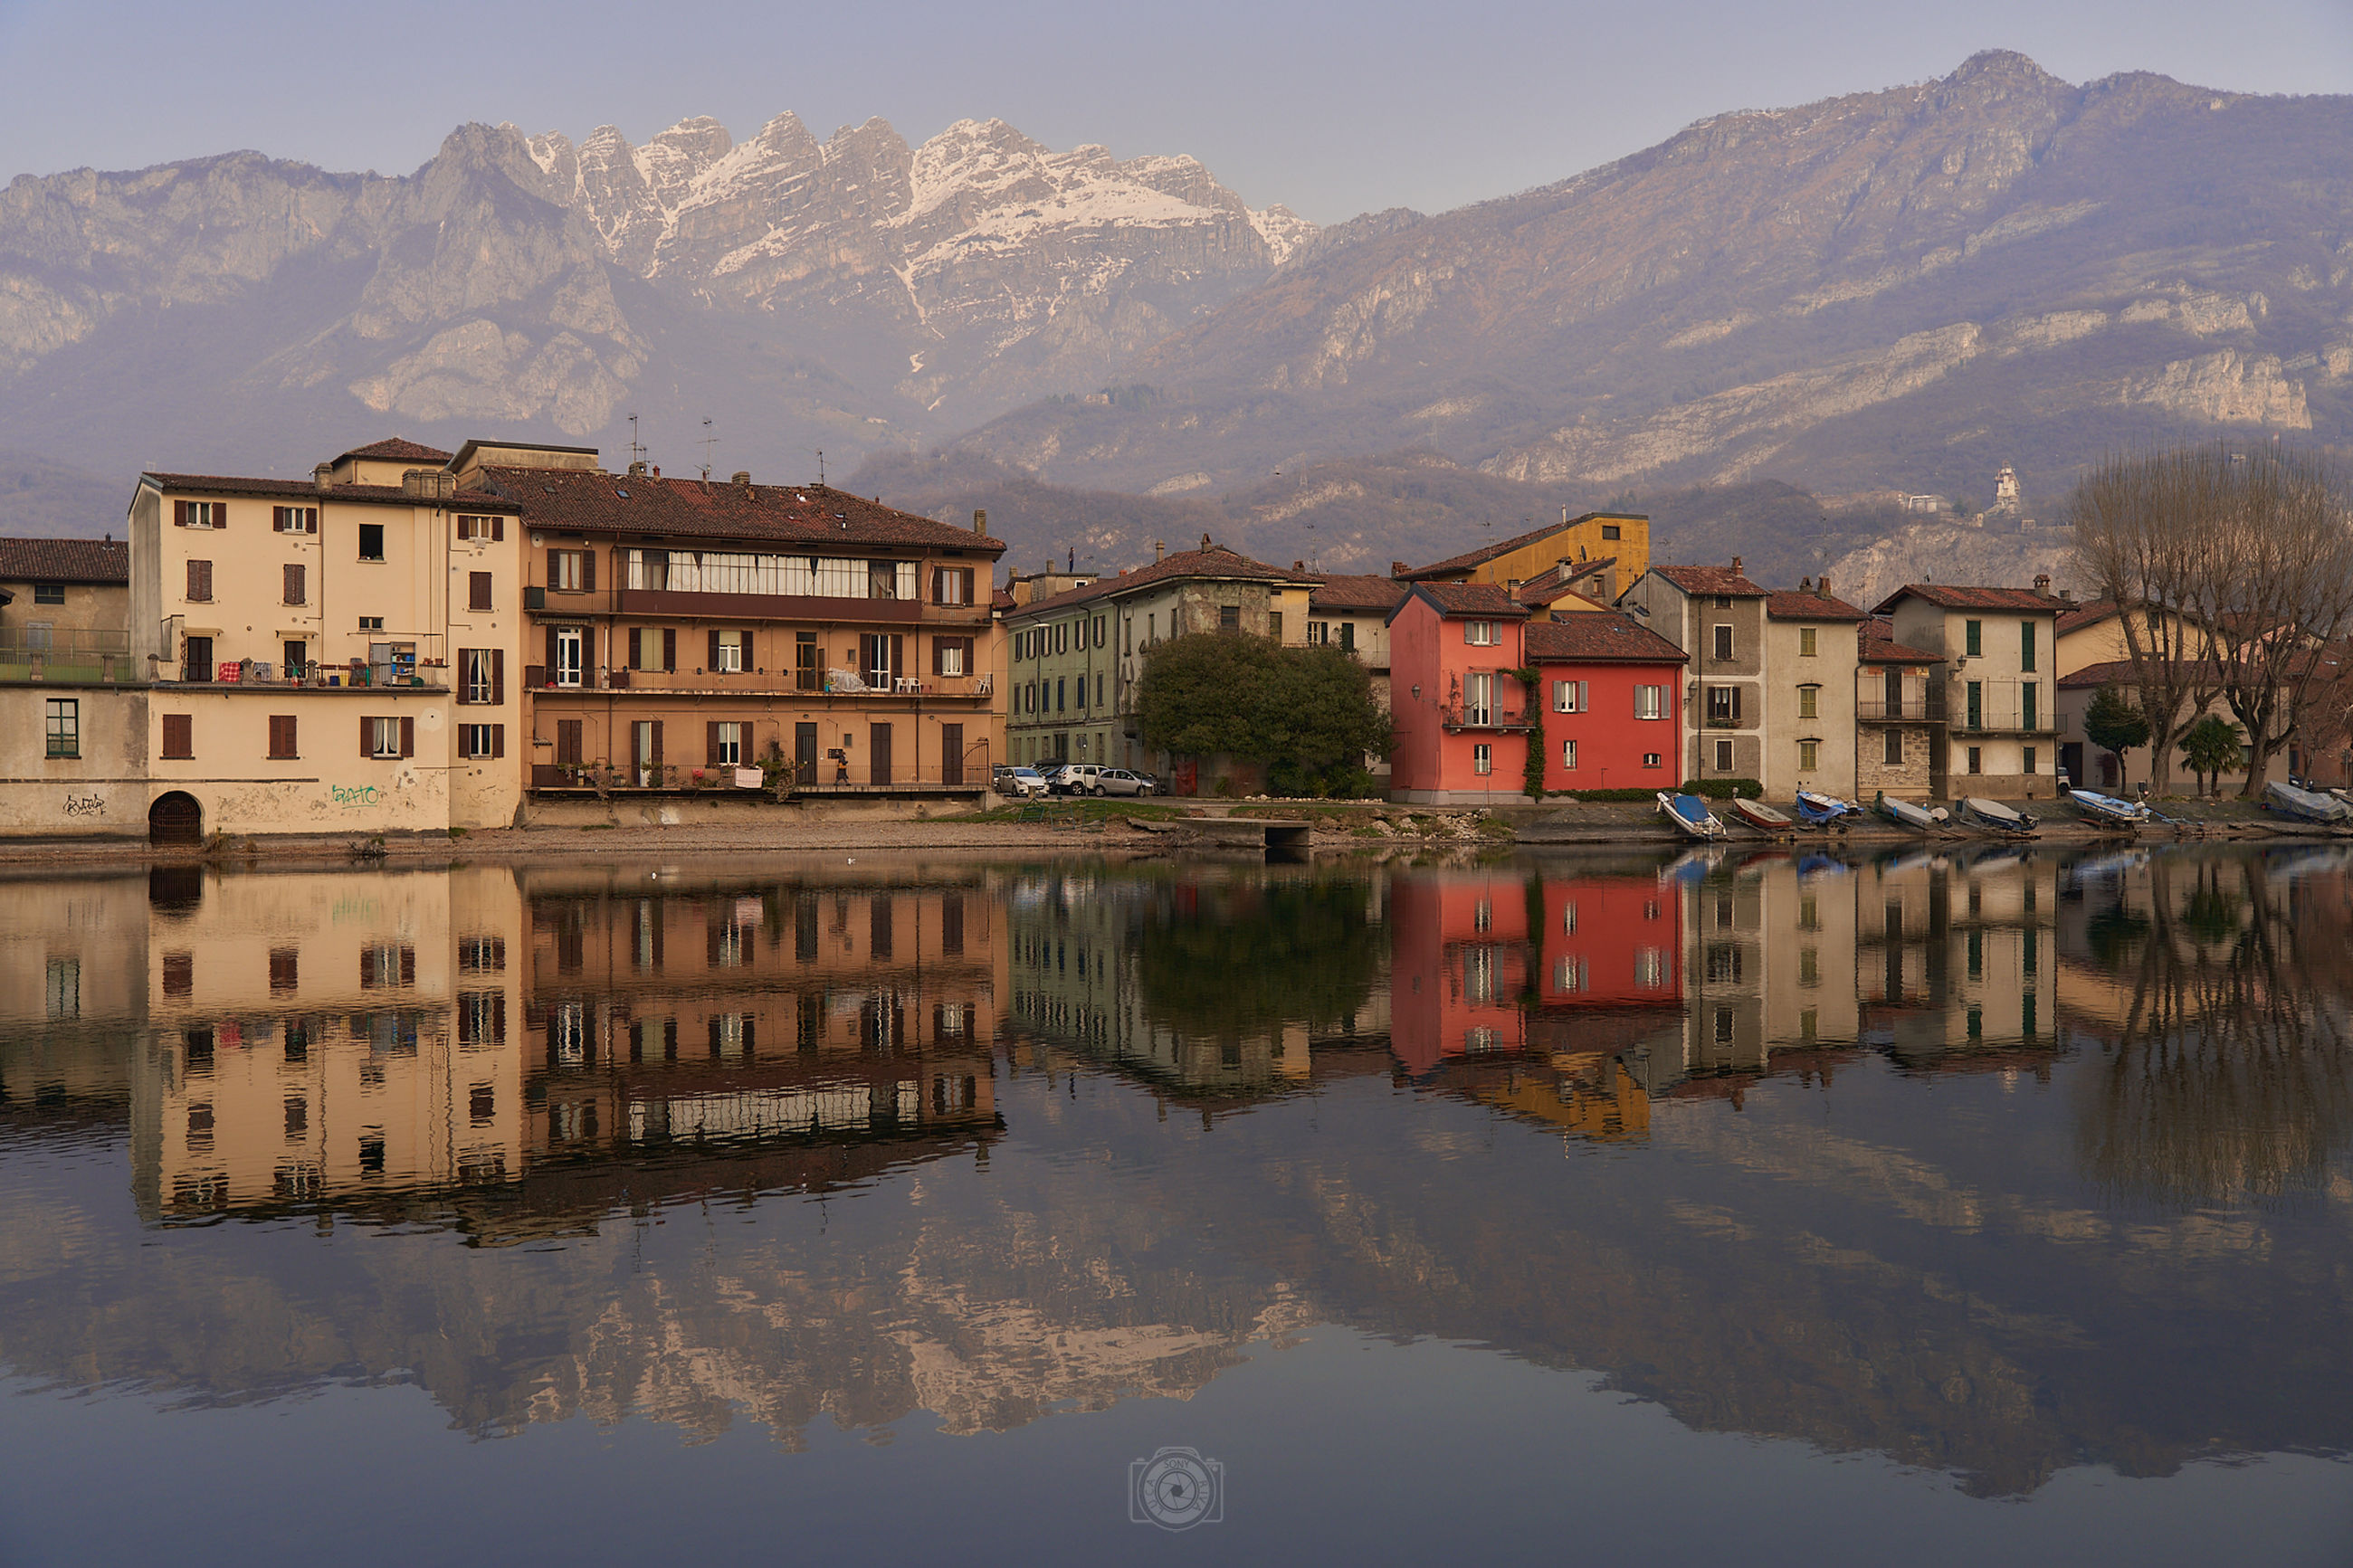 reflection, water, architecture, mountain, building exterior, building, built structure, lake, nature, house, mountain range, sky, city, town, travel destinations, scenics - nature, landscape, morning, residential district, no people, environment, travel, beauty in nature, tourism, waterfront, outdoors, reflection lake, history, cityscape, land, tranquility, snow, religion